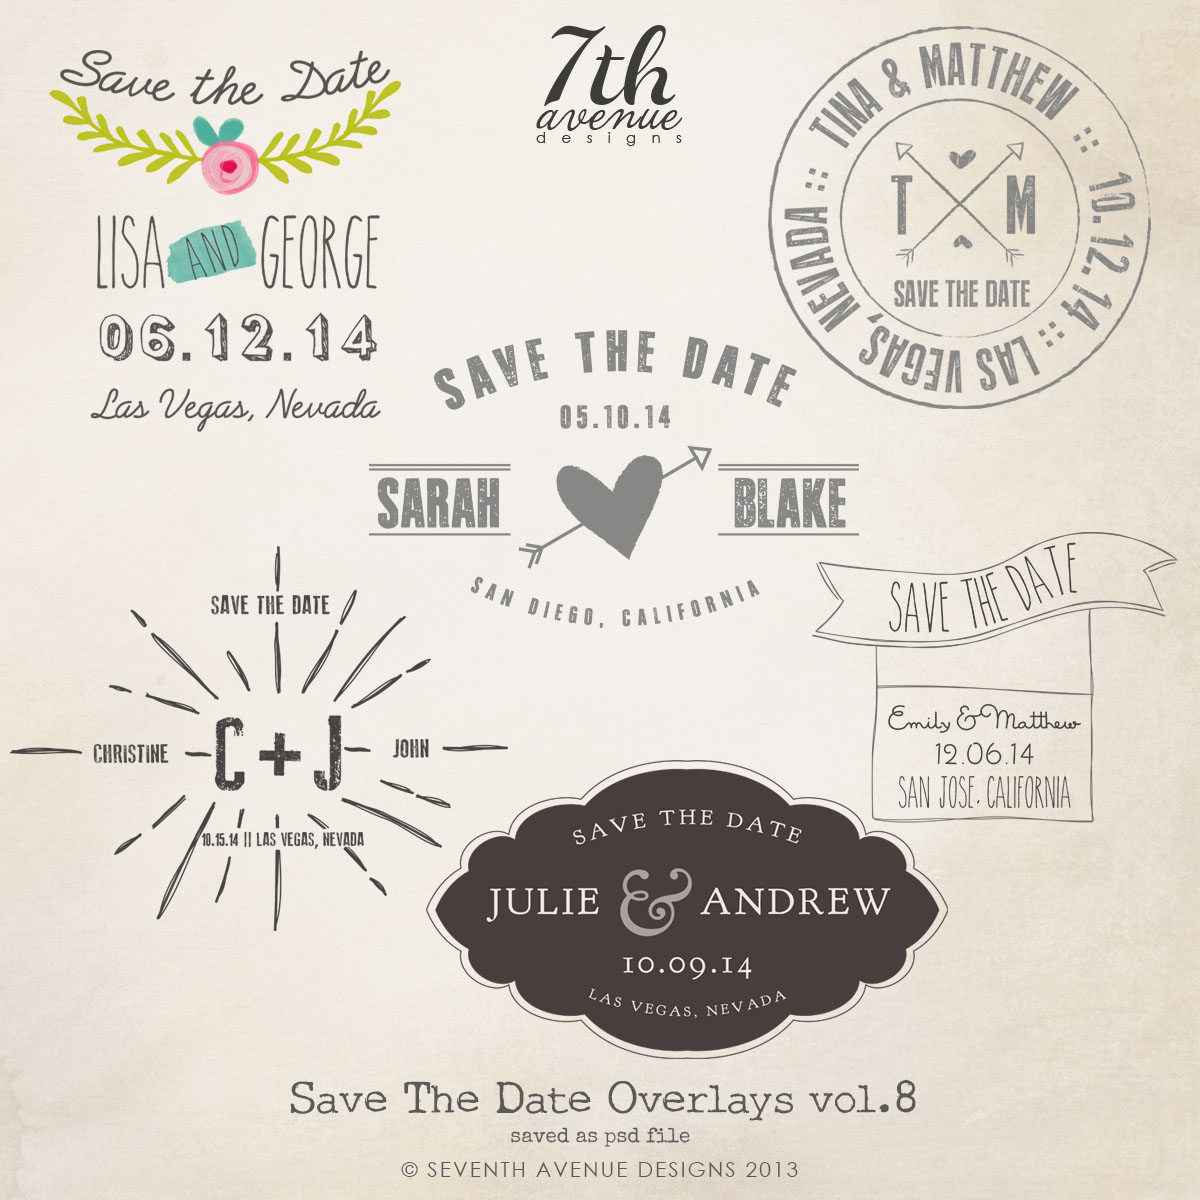 save the date word overlays vol 7 overlays savethedate7 10 00